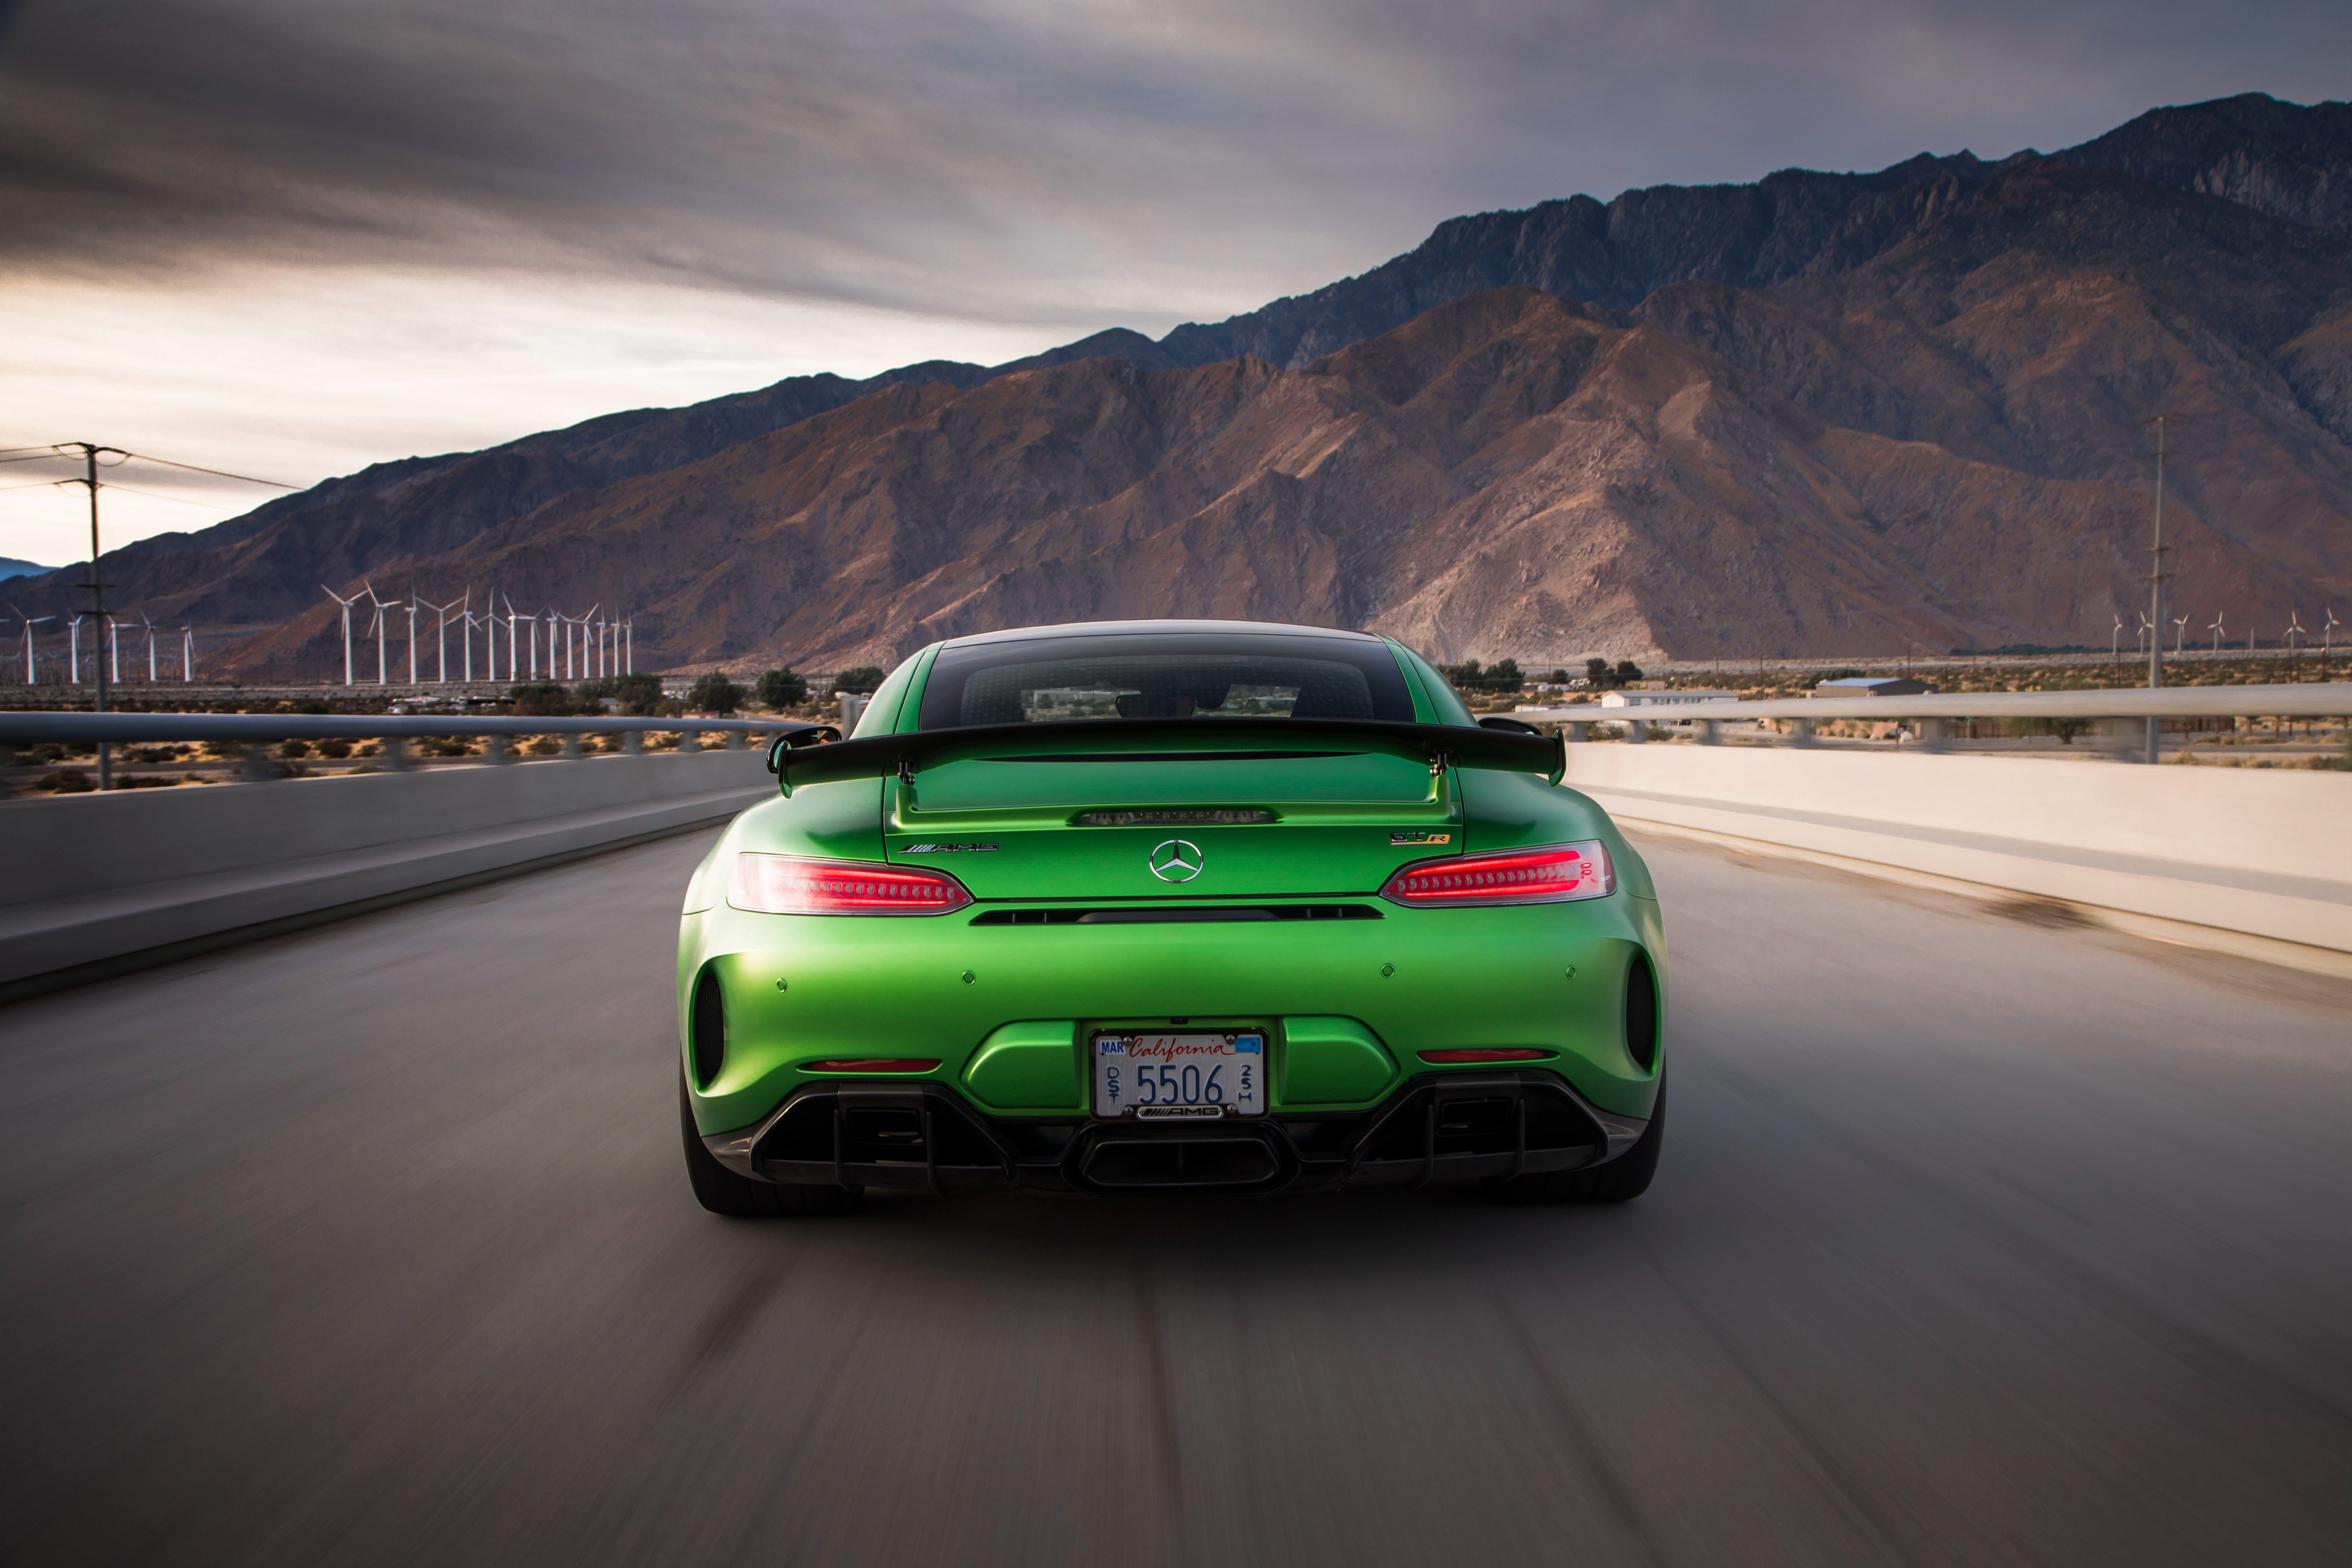 Mercedes Amg Gtr Rear, HD Cars, 4k Wallpapers, Images ...